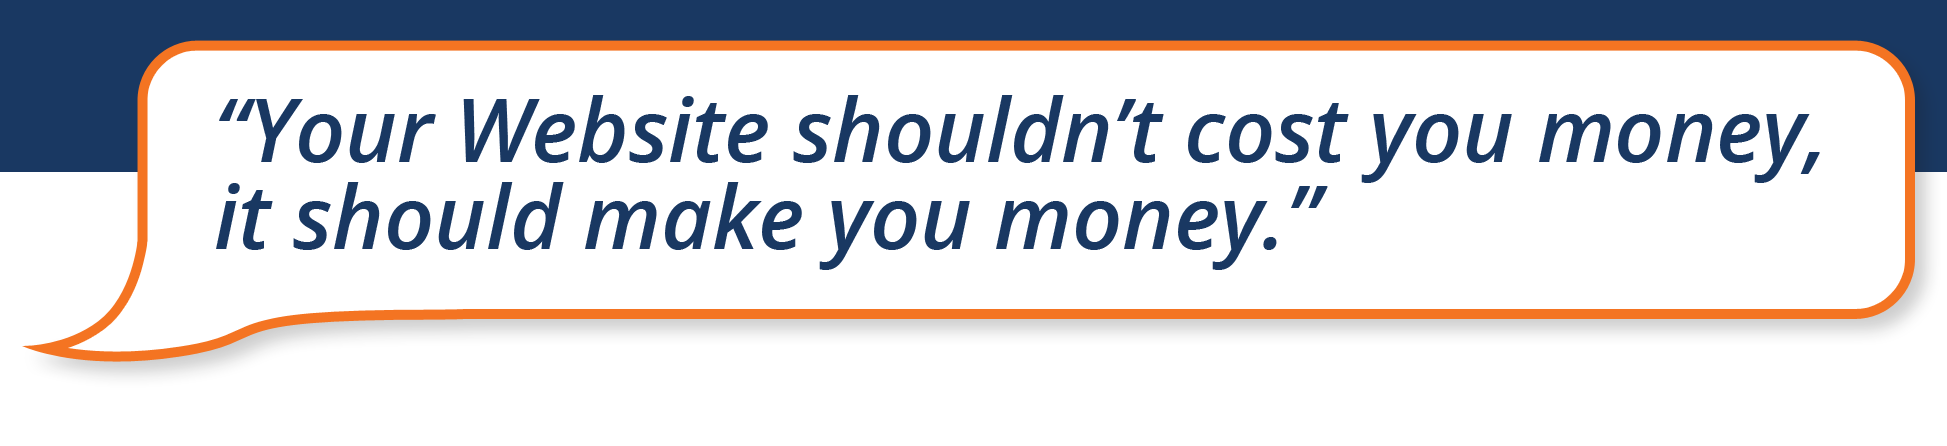 """""""Your Website shouldn't cost you money, it should make you money"""" speech bubble with blue background"""